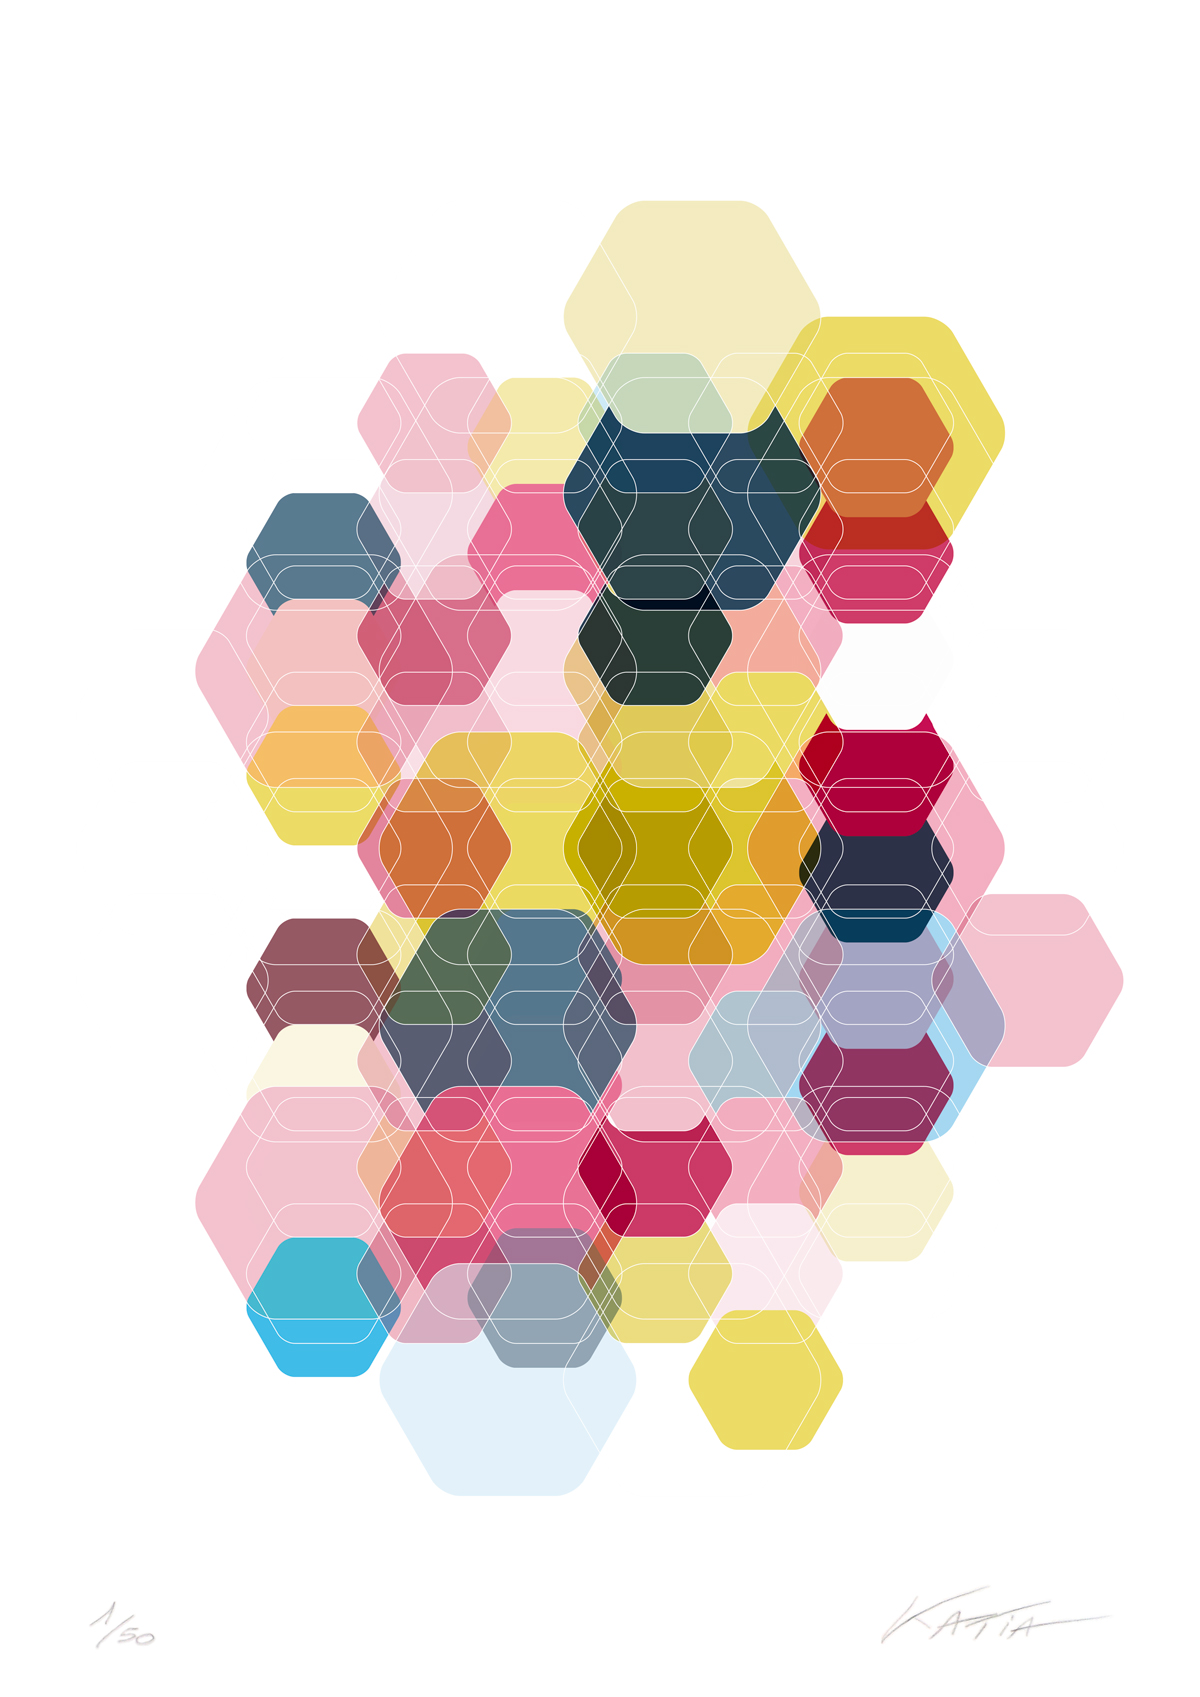 Hexagon & Game Colors I